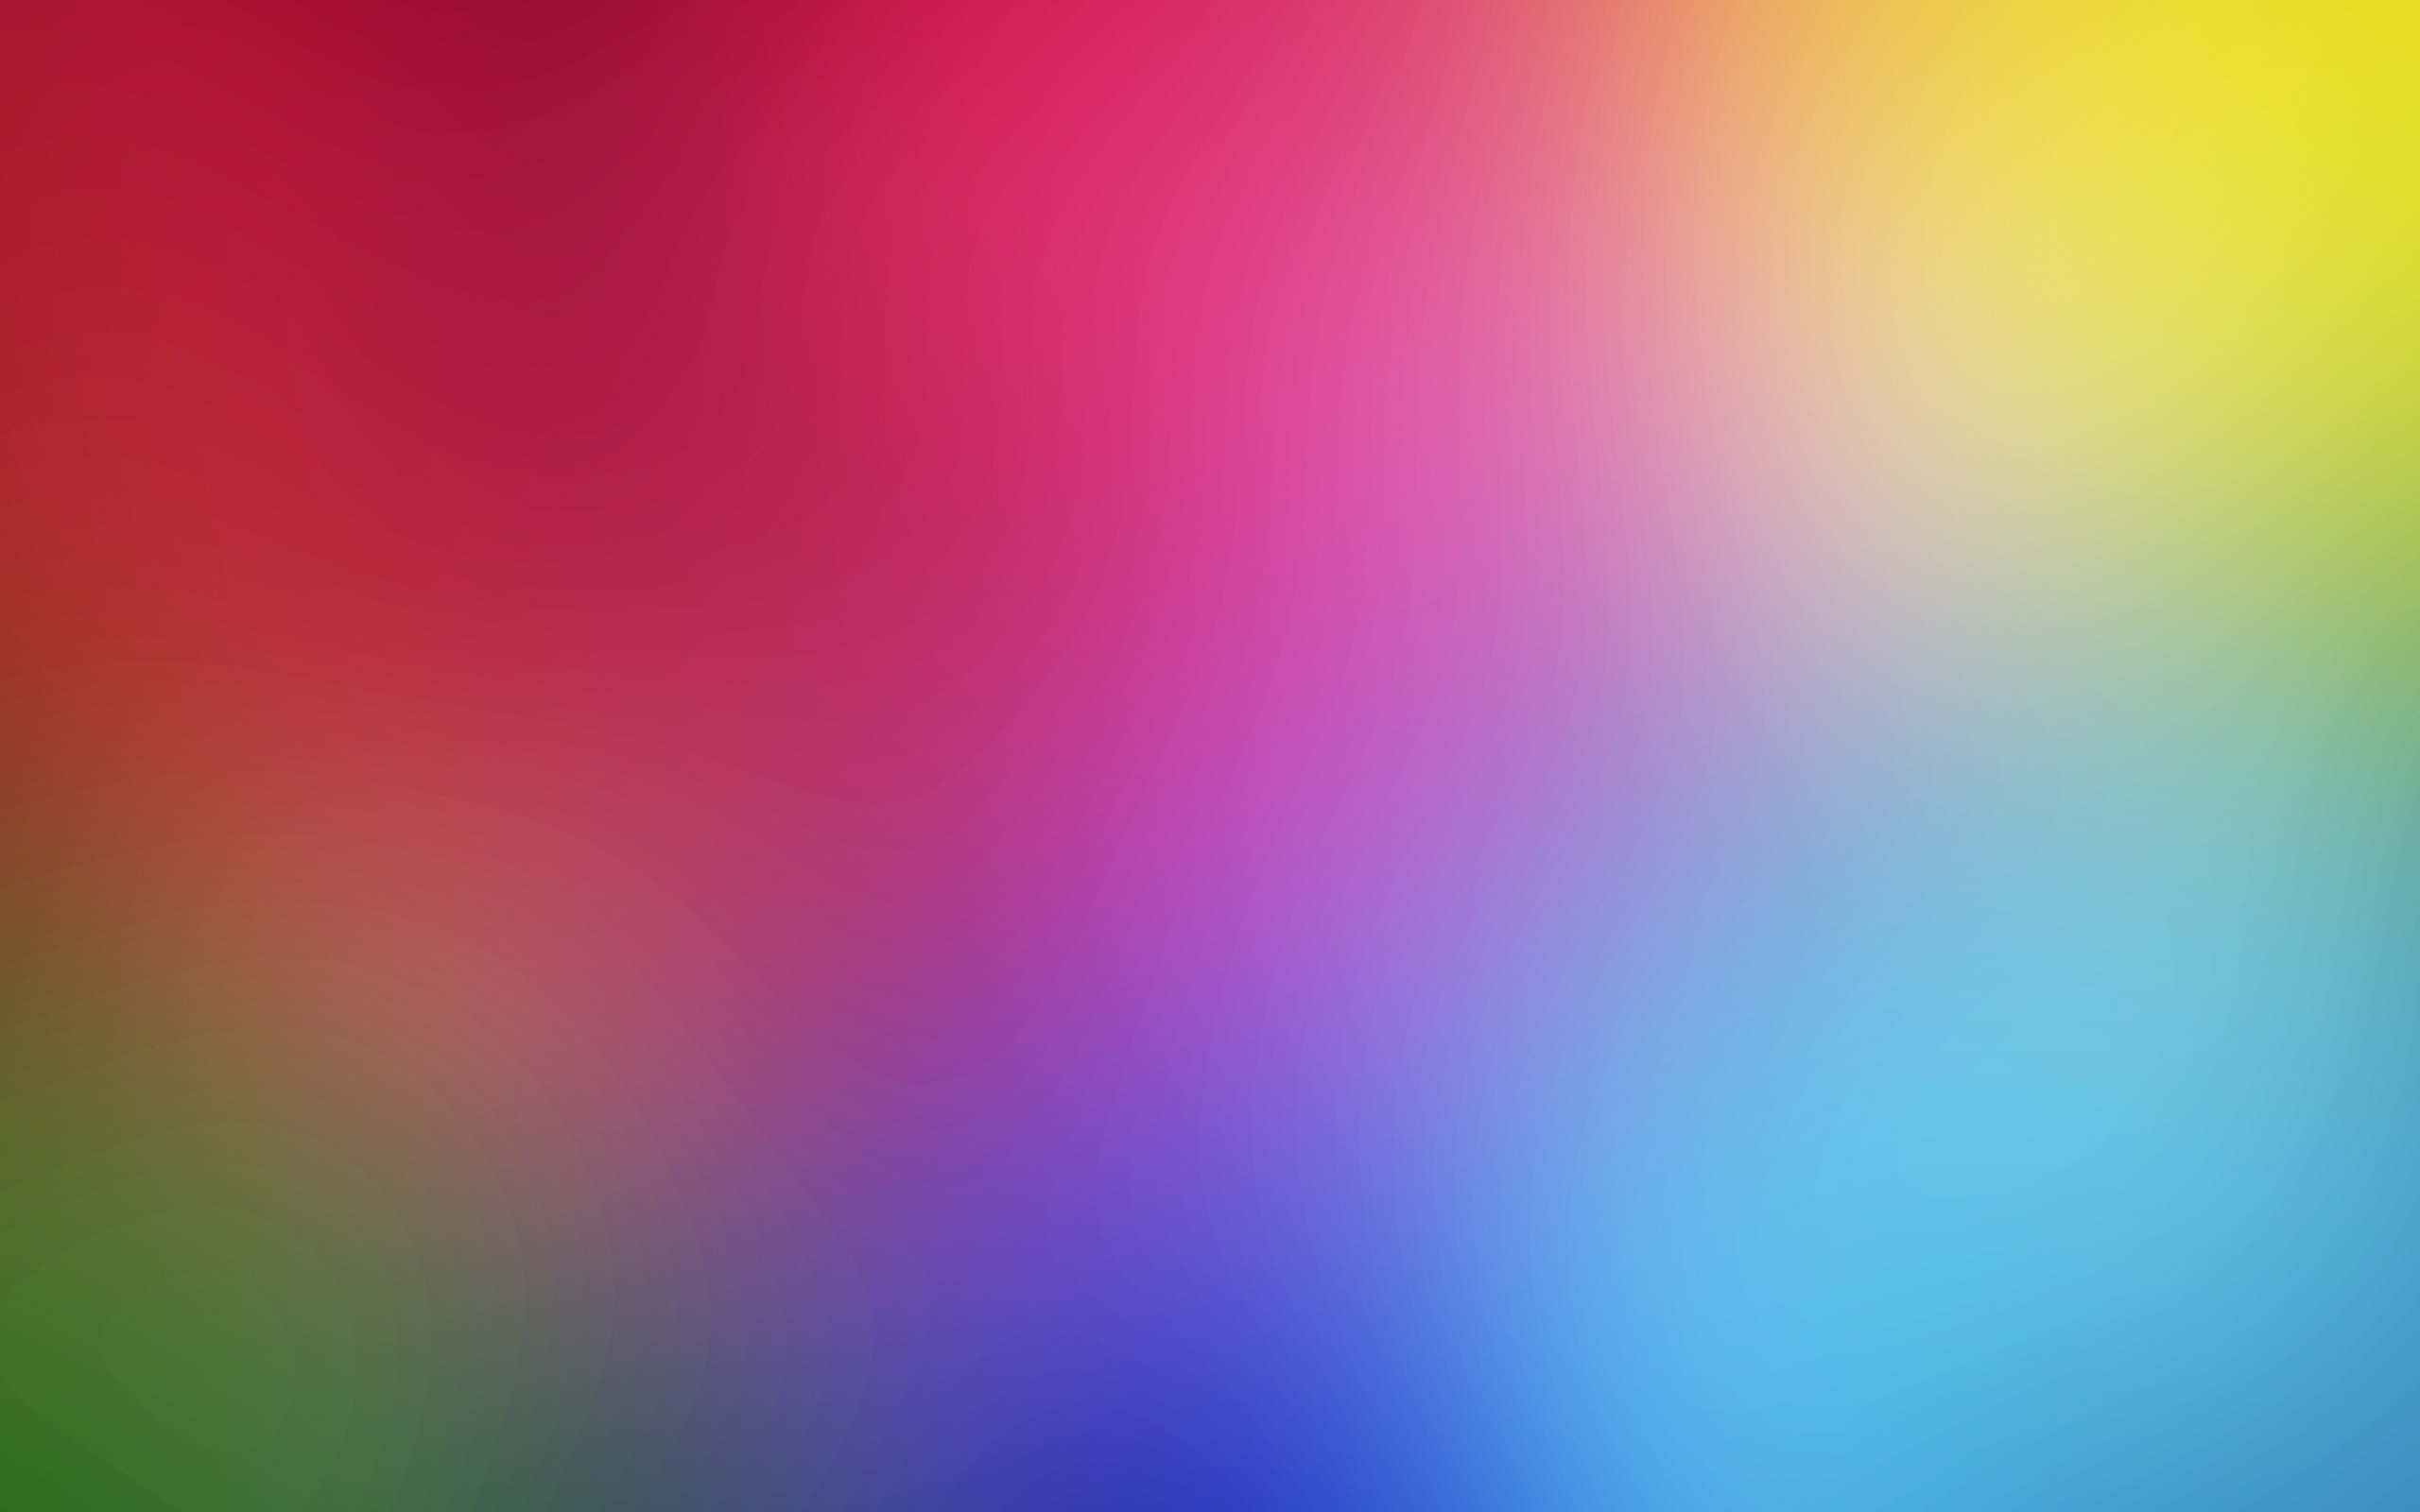 Color Gradient Wallpaper 76 Images